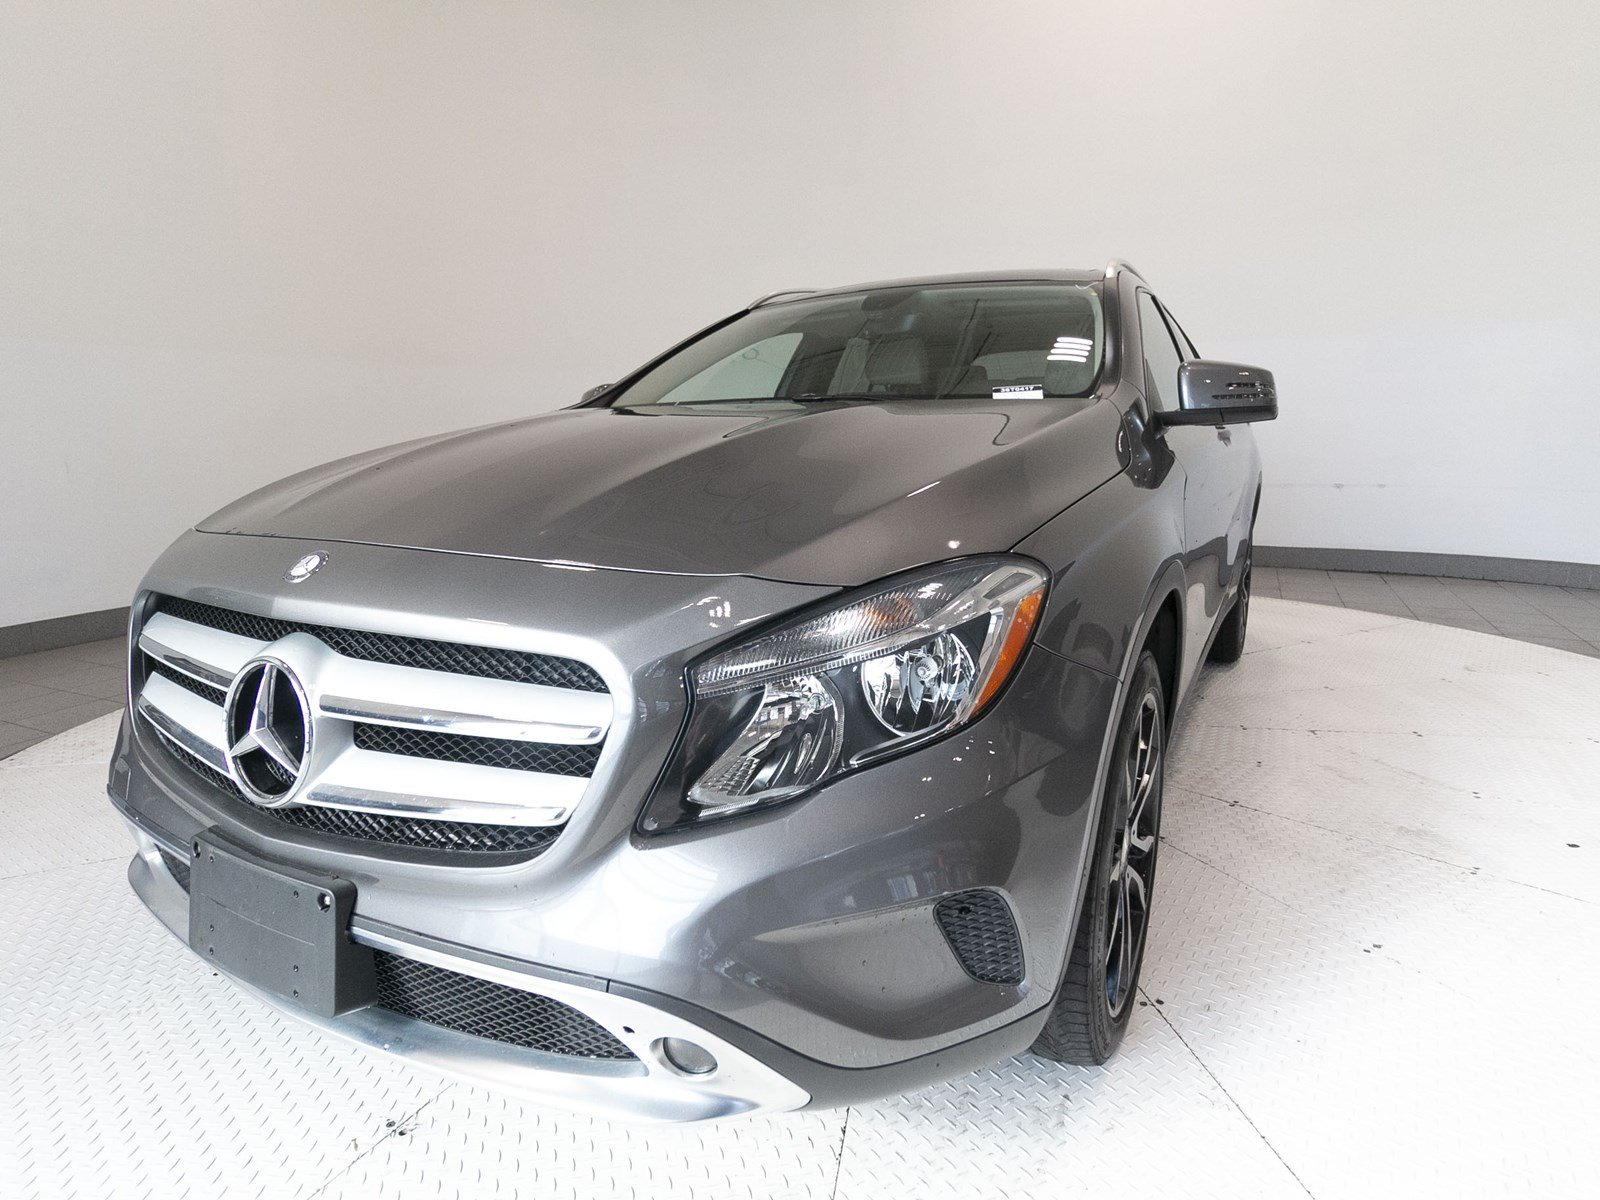 Certified Pre Owned 2015 Mercedes Benz GLA GLA 250 SUV in Fort